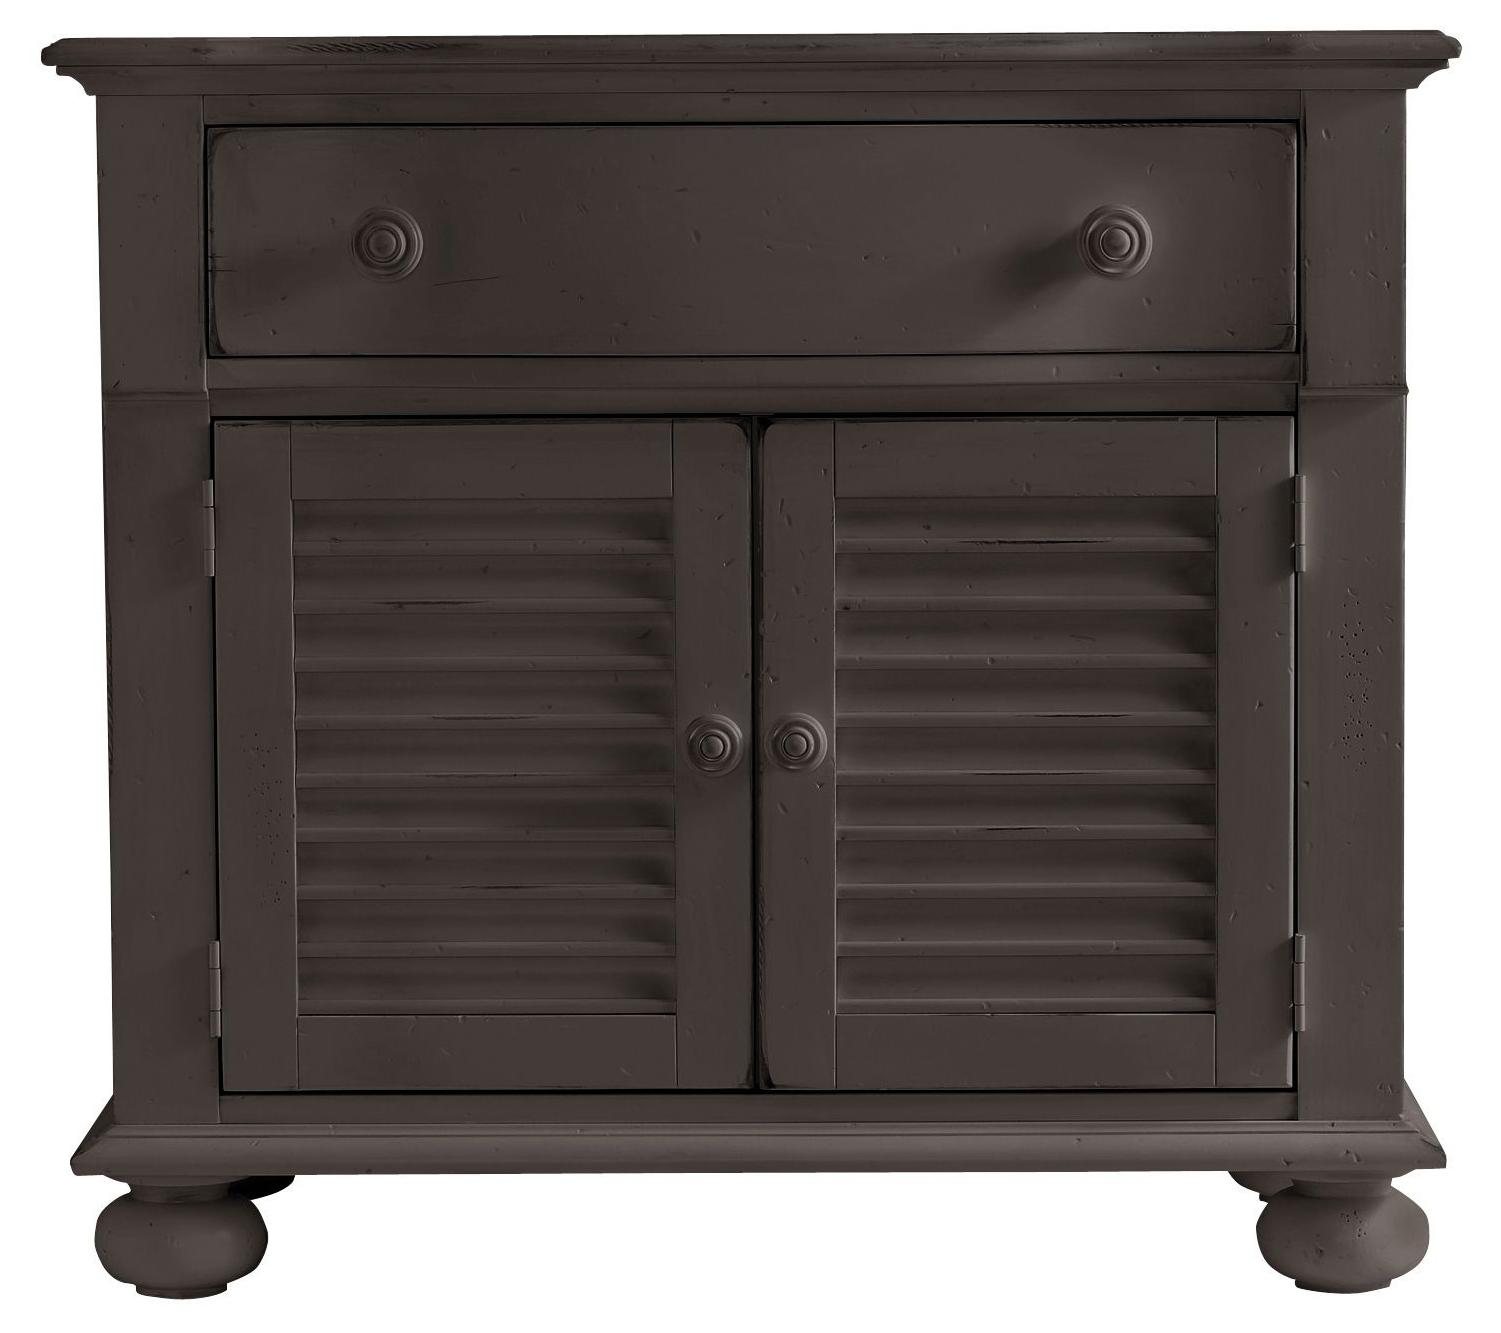 Stanley Furniture Coastal Living Retreat Summerhouse Chest - Item Number: 411-83-17